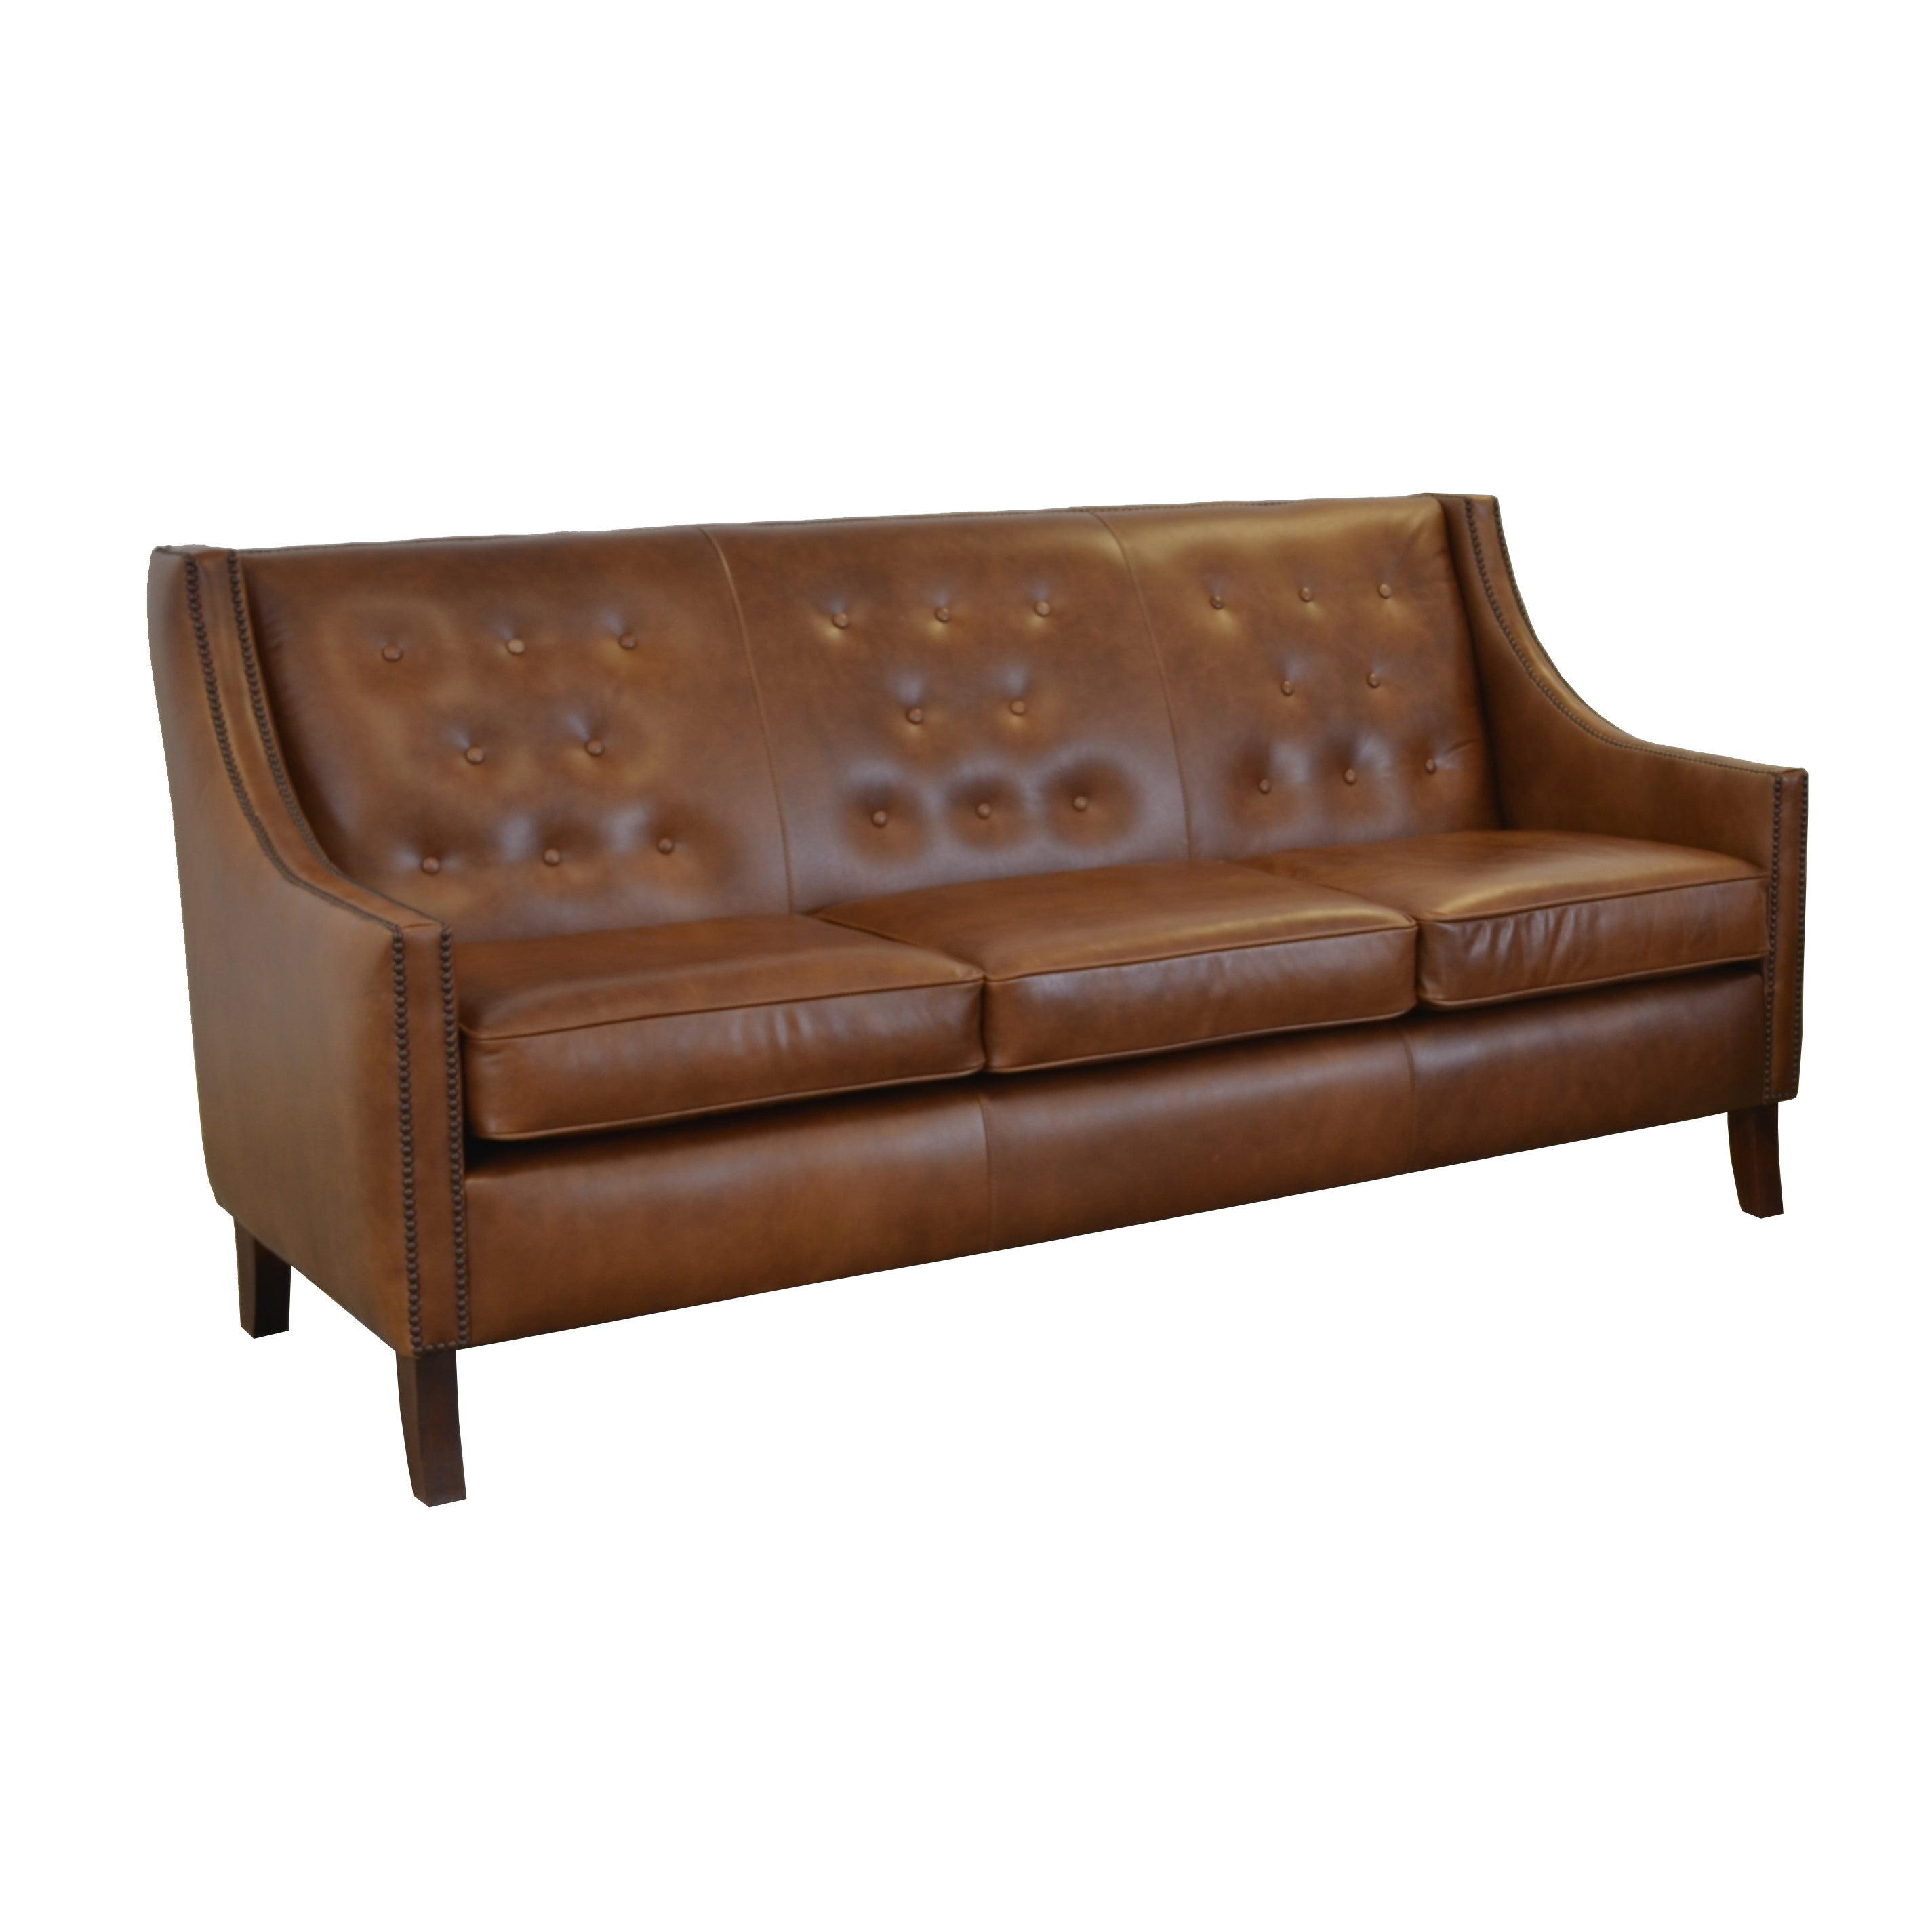 Shop Woburn Genuine Top Grain Leather Tufted And Nailhead Trimmed